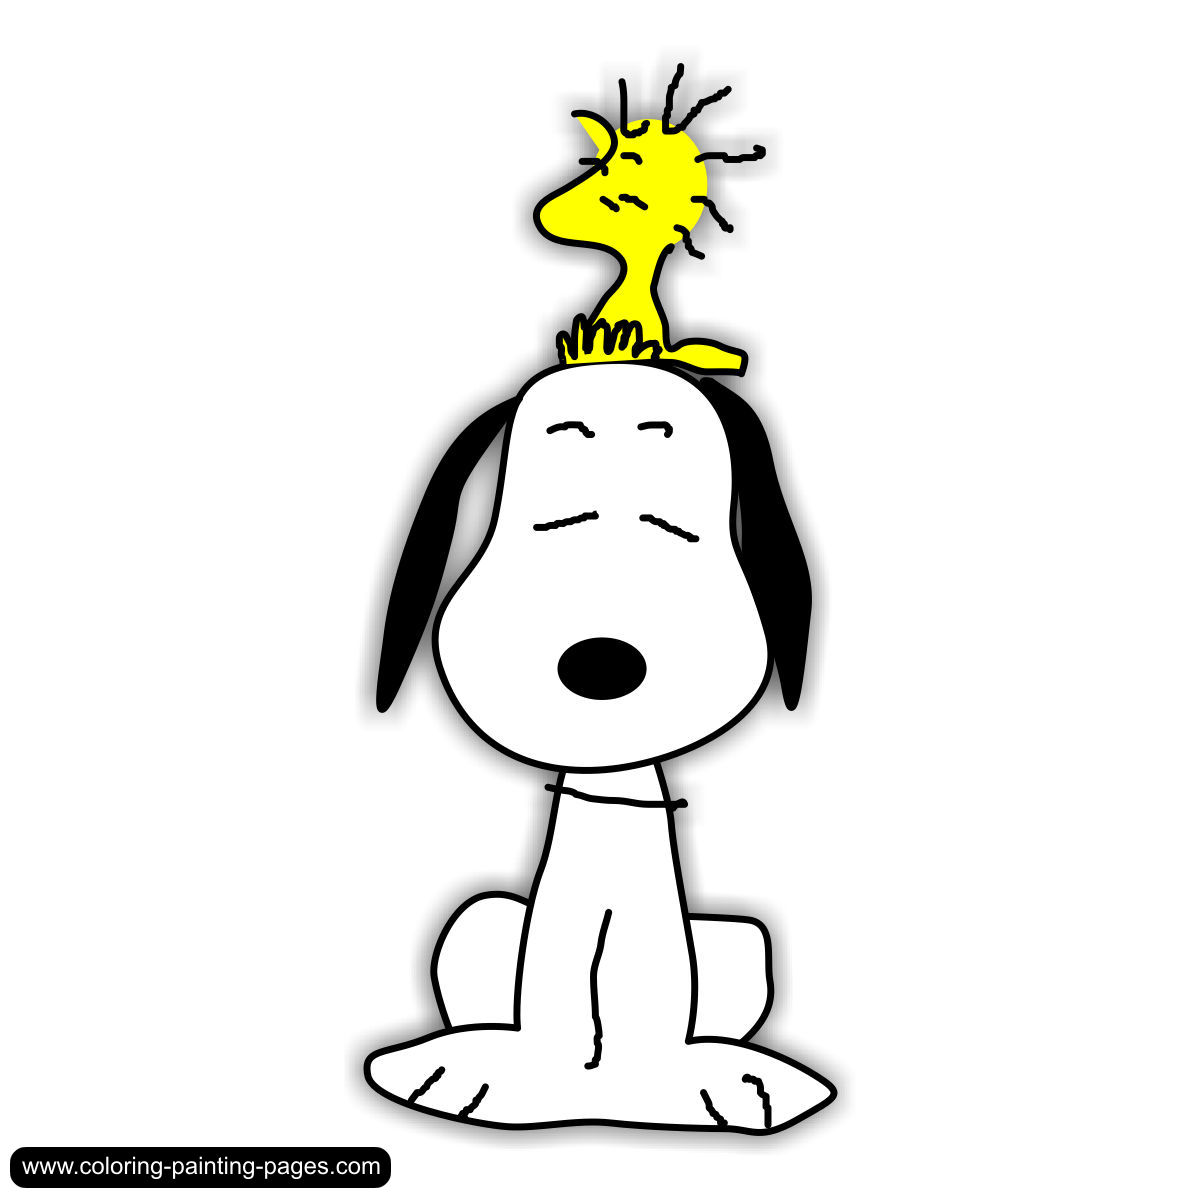 Snoopy Animals Cliparts.